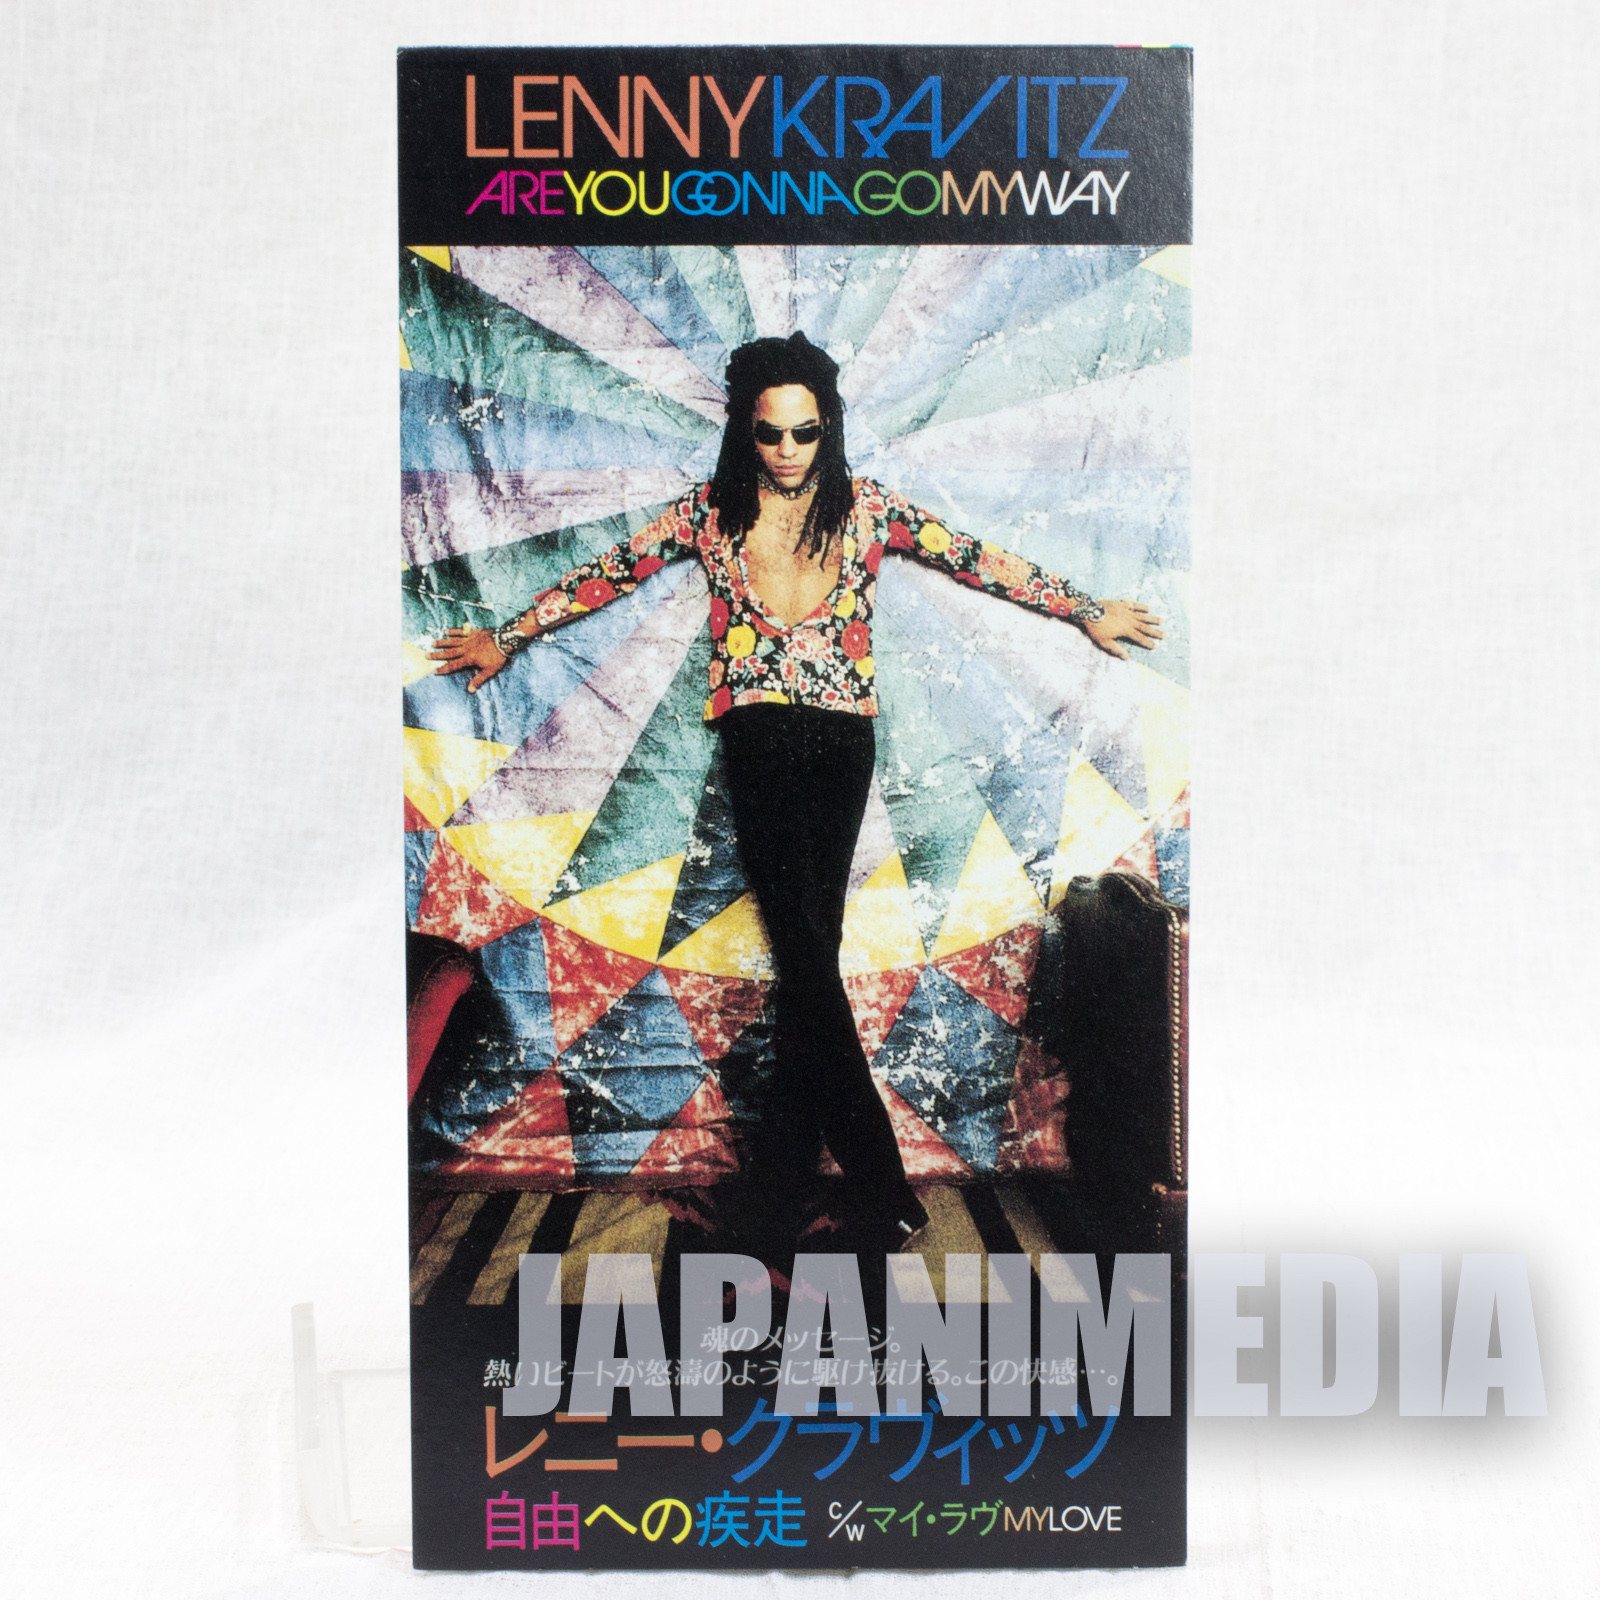 LENNY KRAVITZ ARE YOU GONNA GO MY WAY Japan 1993 8cm 3inch CD Single